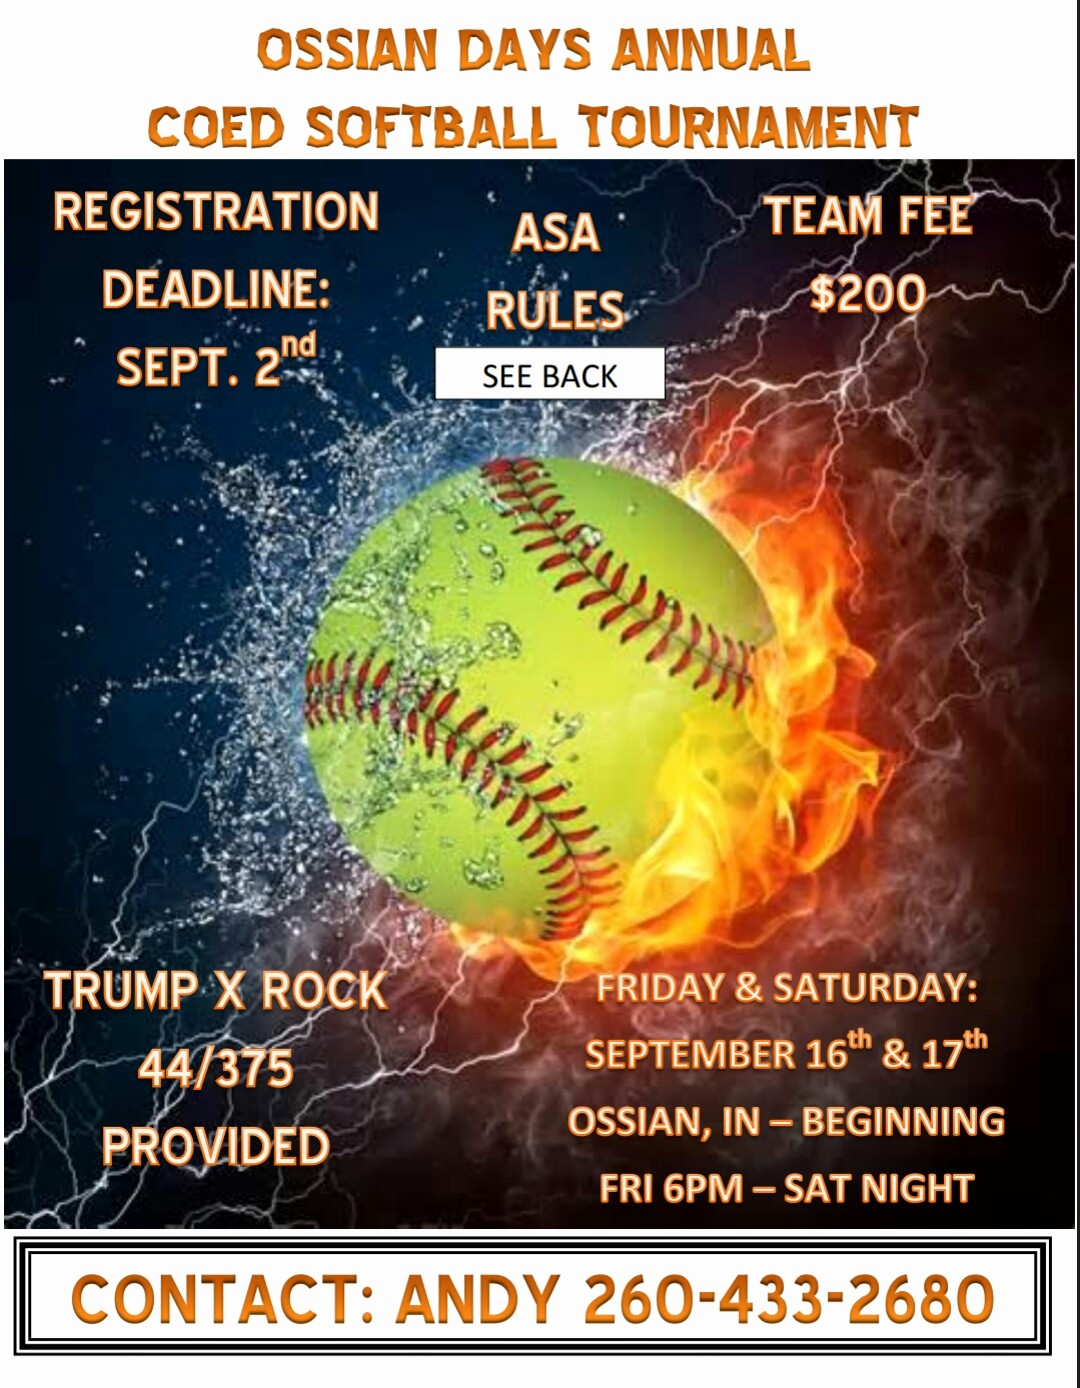 Softball tournament Flyer Template Free New softball tournament Flyer